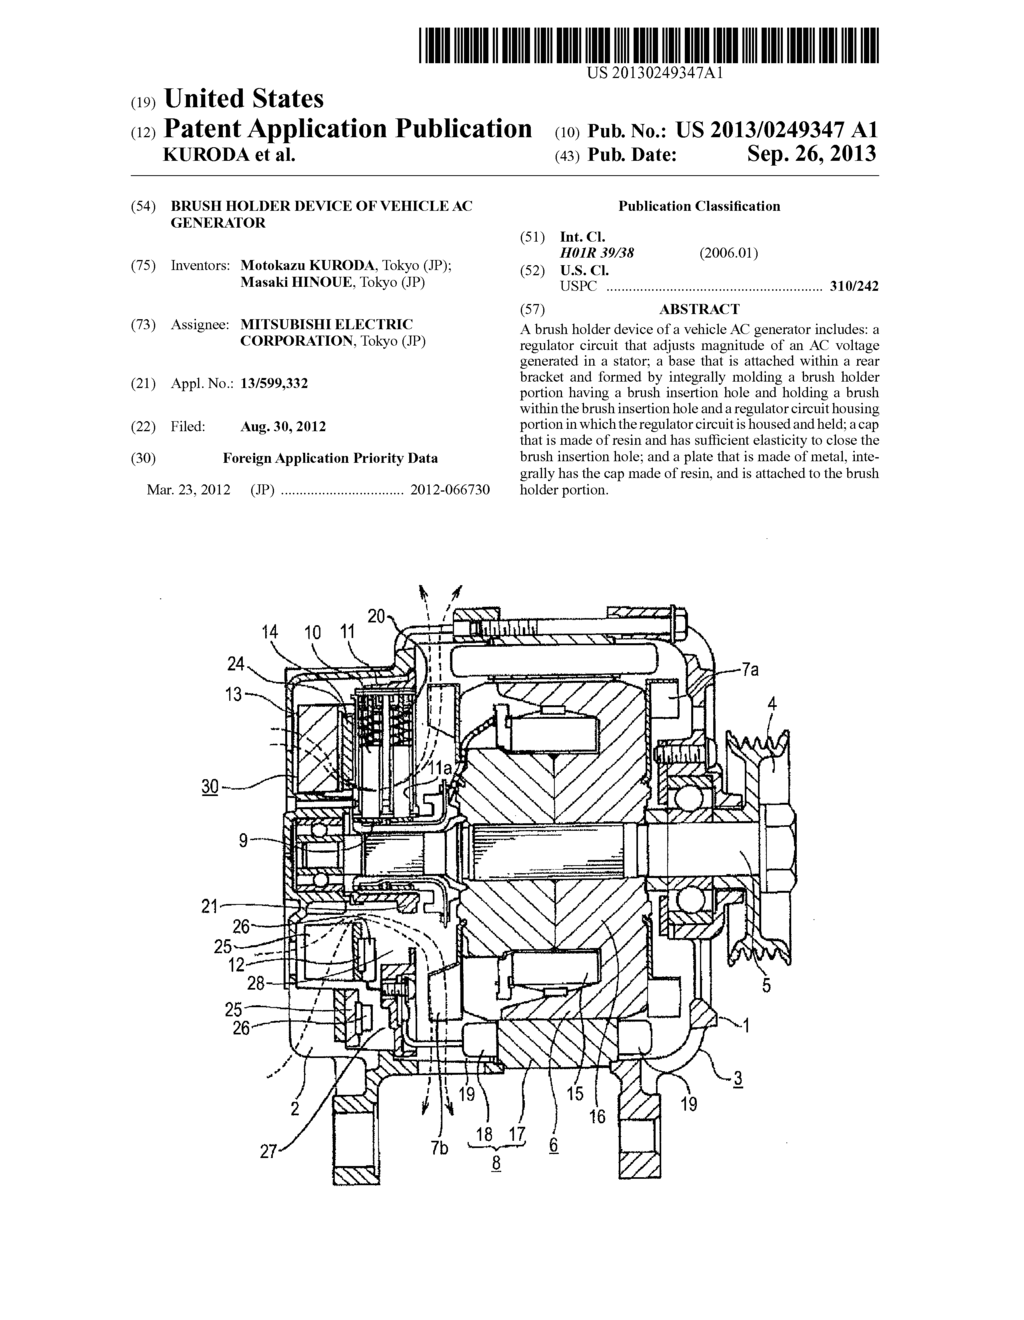 hight resolution of brush holder device of vehicle ac generator diagram schematic and image 01